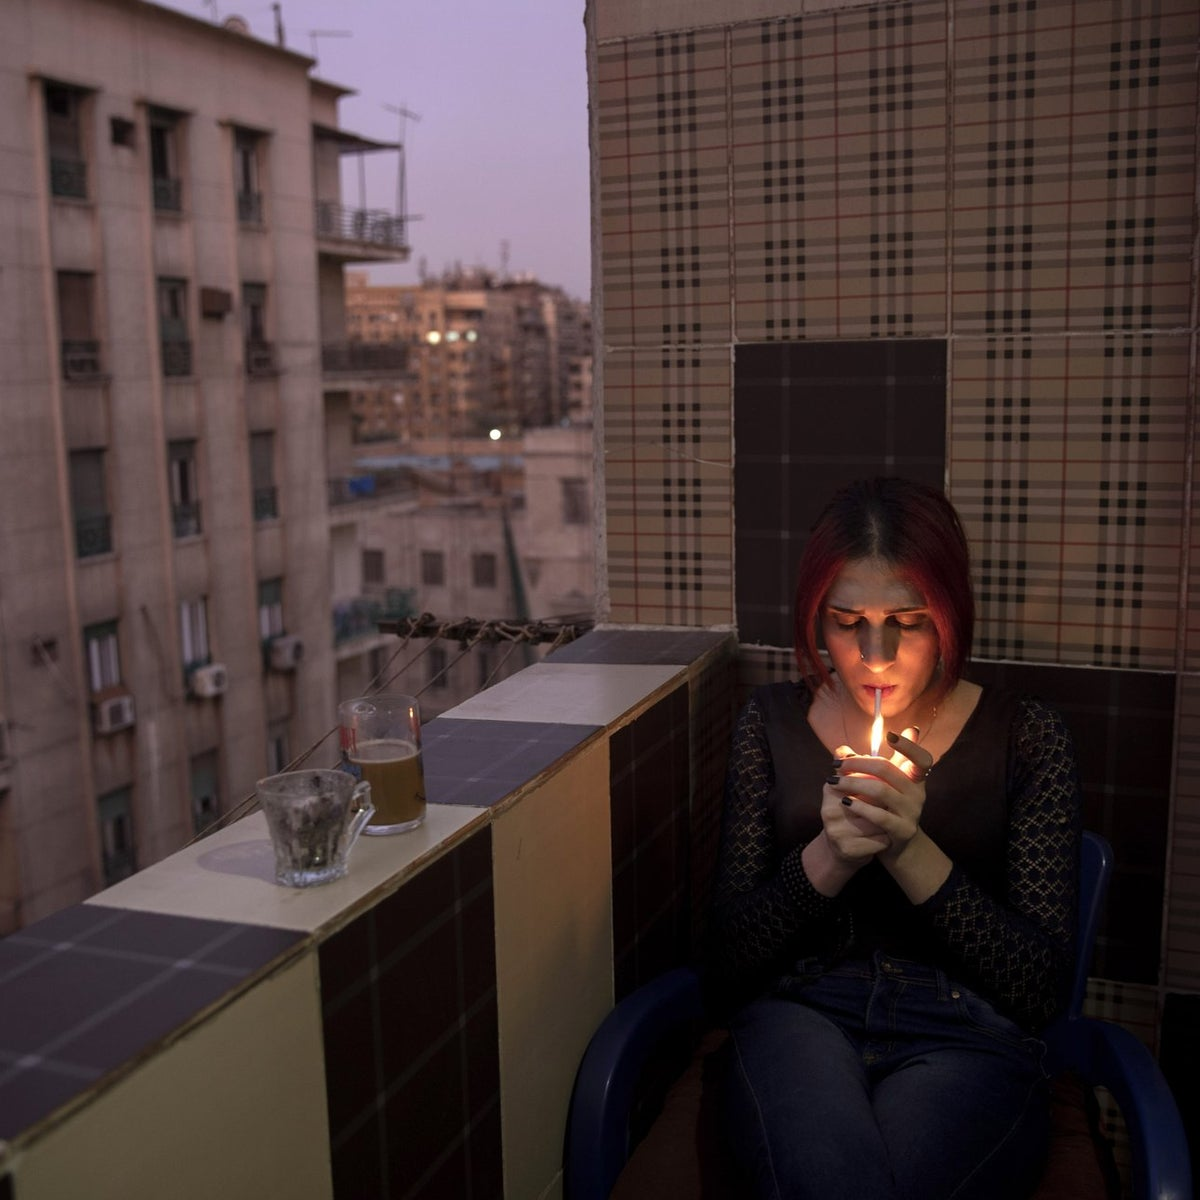 Malak el-Kashif smokes a cigarette in the balcony of her apartment in Cairo, Egypt.